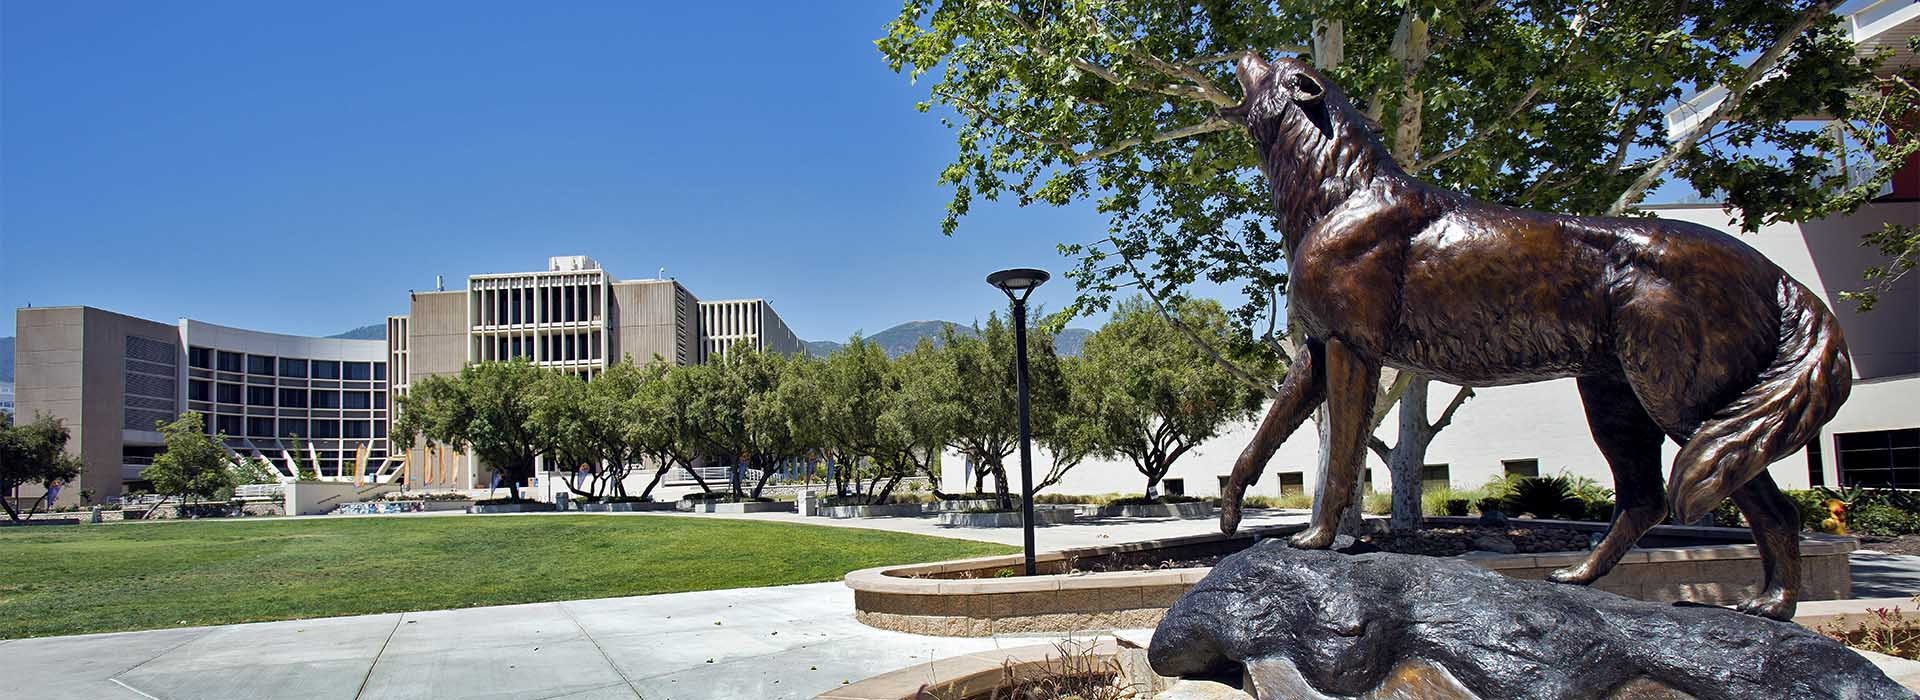 "16-06-04-CSUSB-- Coyote ""Wild Song"" statue outside the Santos Manuel Student Union (SU) at California State University, San Bernardino on Saturday, Jun 4, 2016. Photo by Corinne McCurdy/CSUSB"